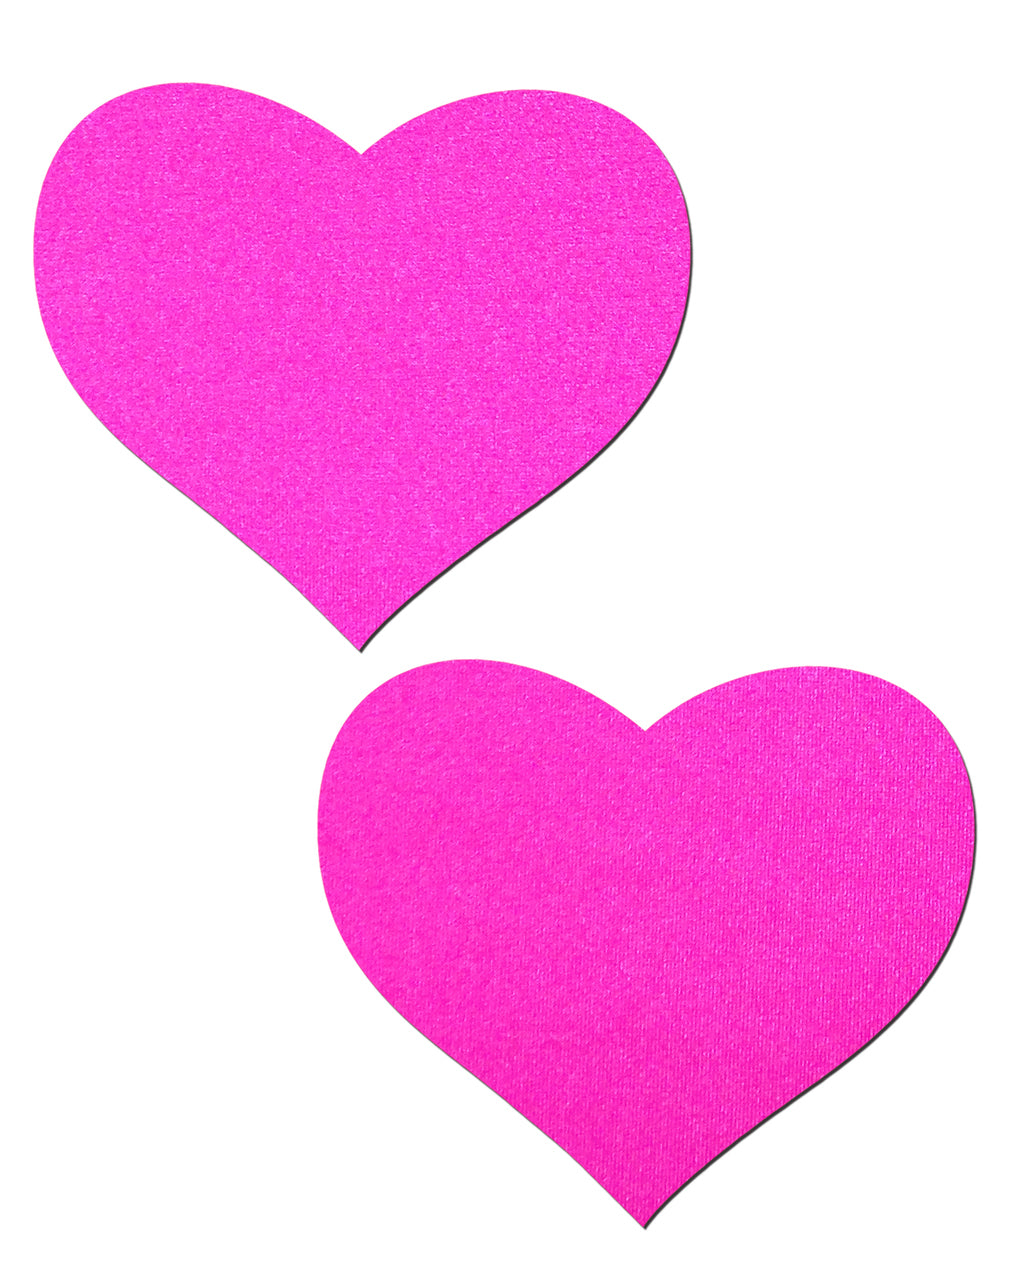 Love: Neon Pink Day-Glow Heart pastie